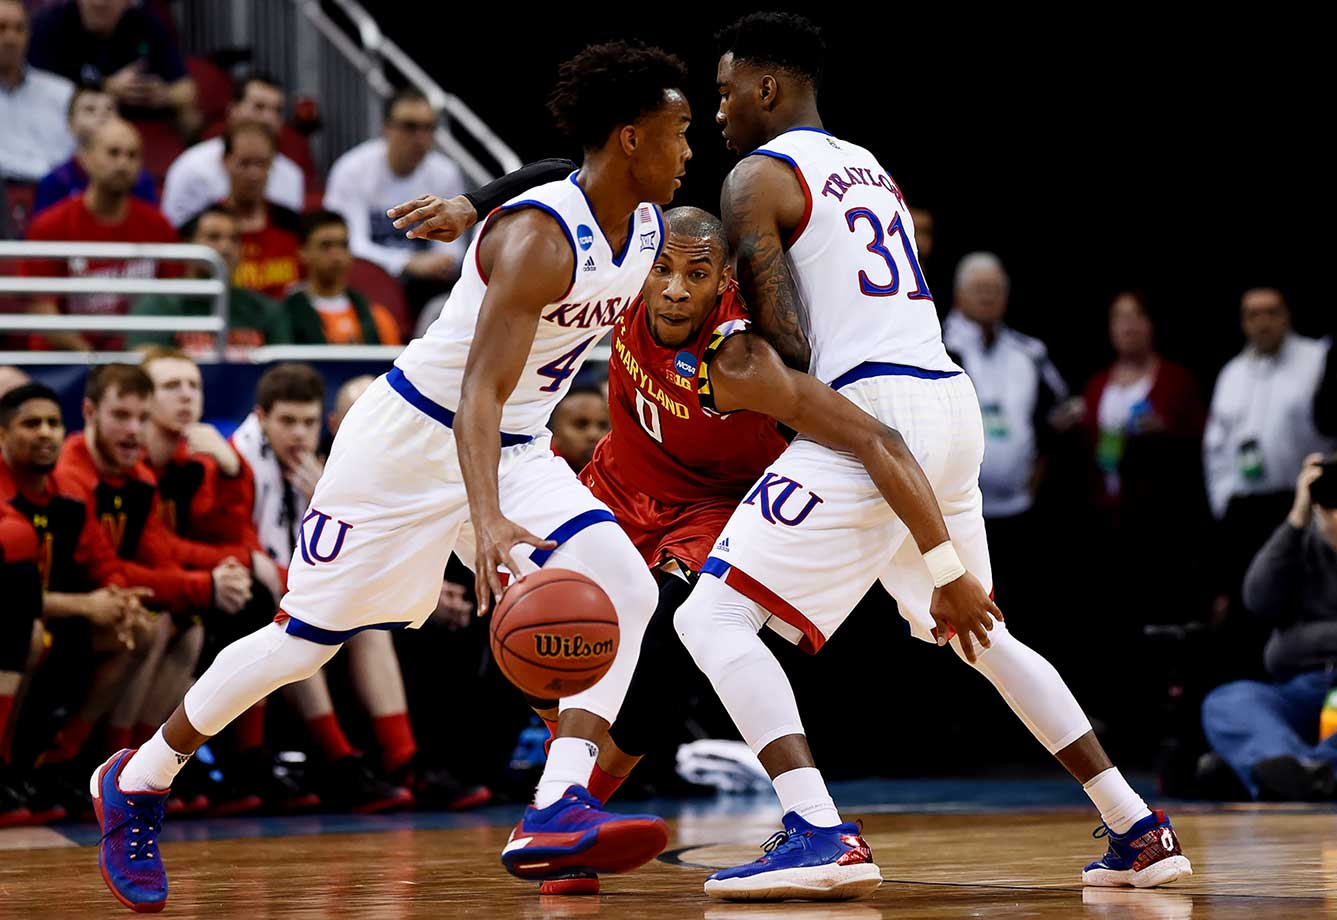 Rasheed Sulaimon of Maryland attempts to get by Jamari Traylor to get to Devonte' Graham.